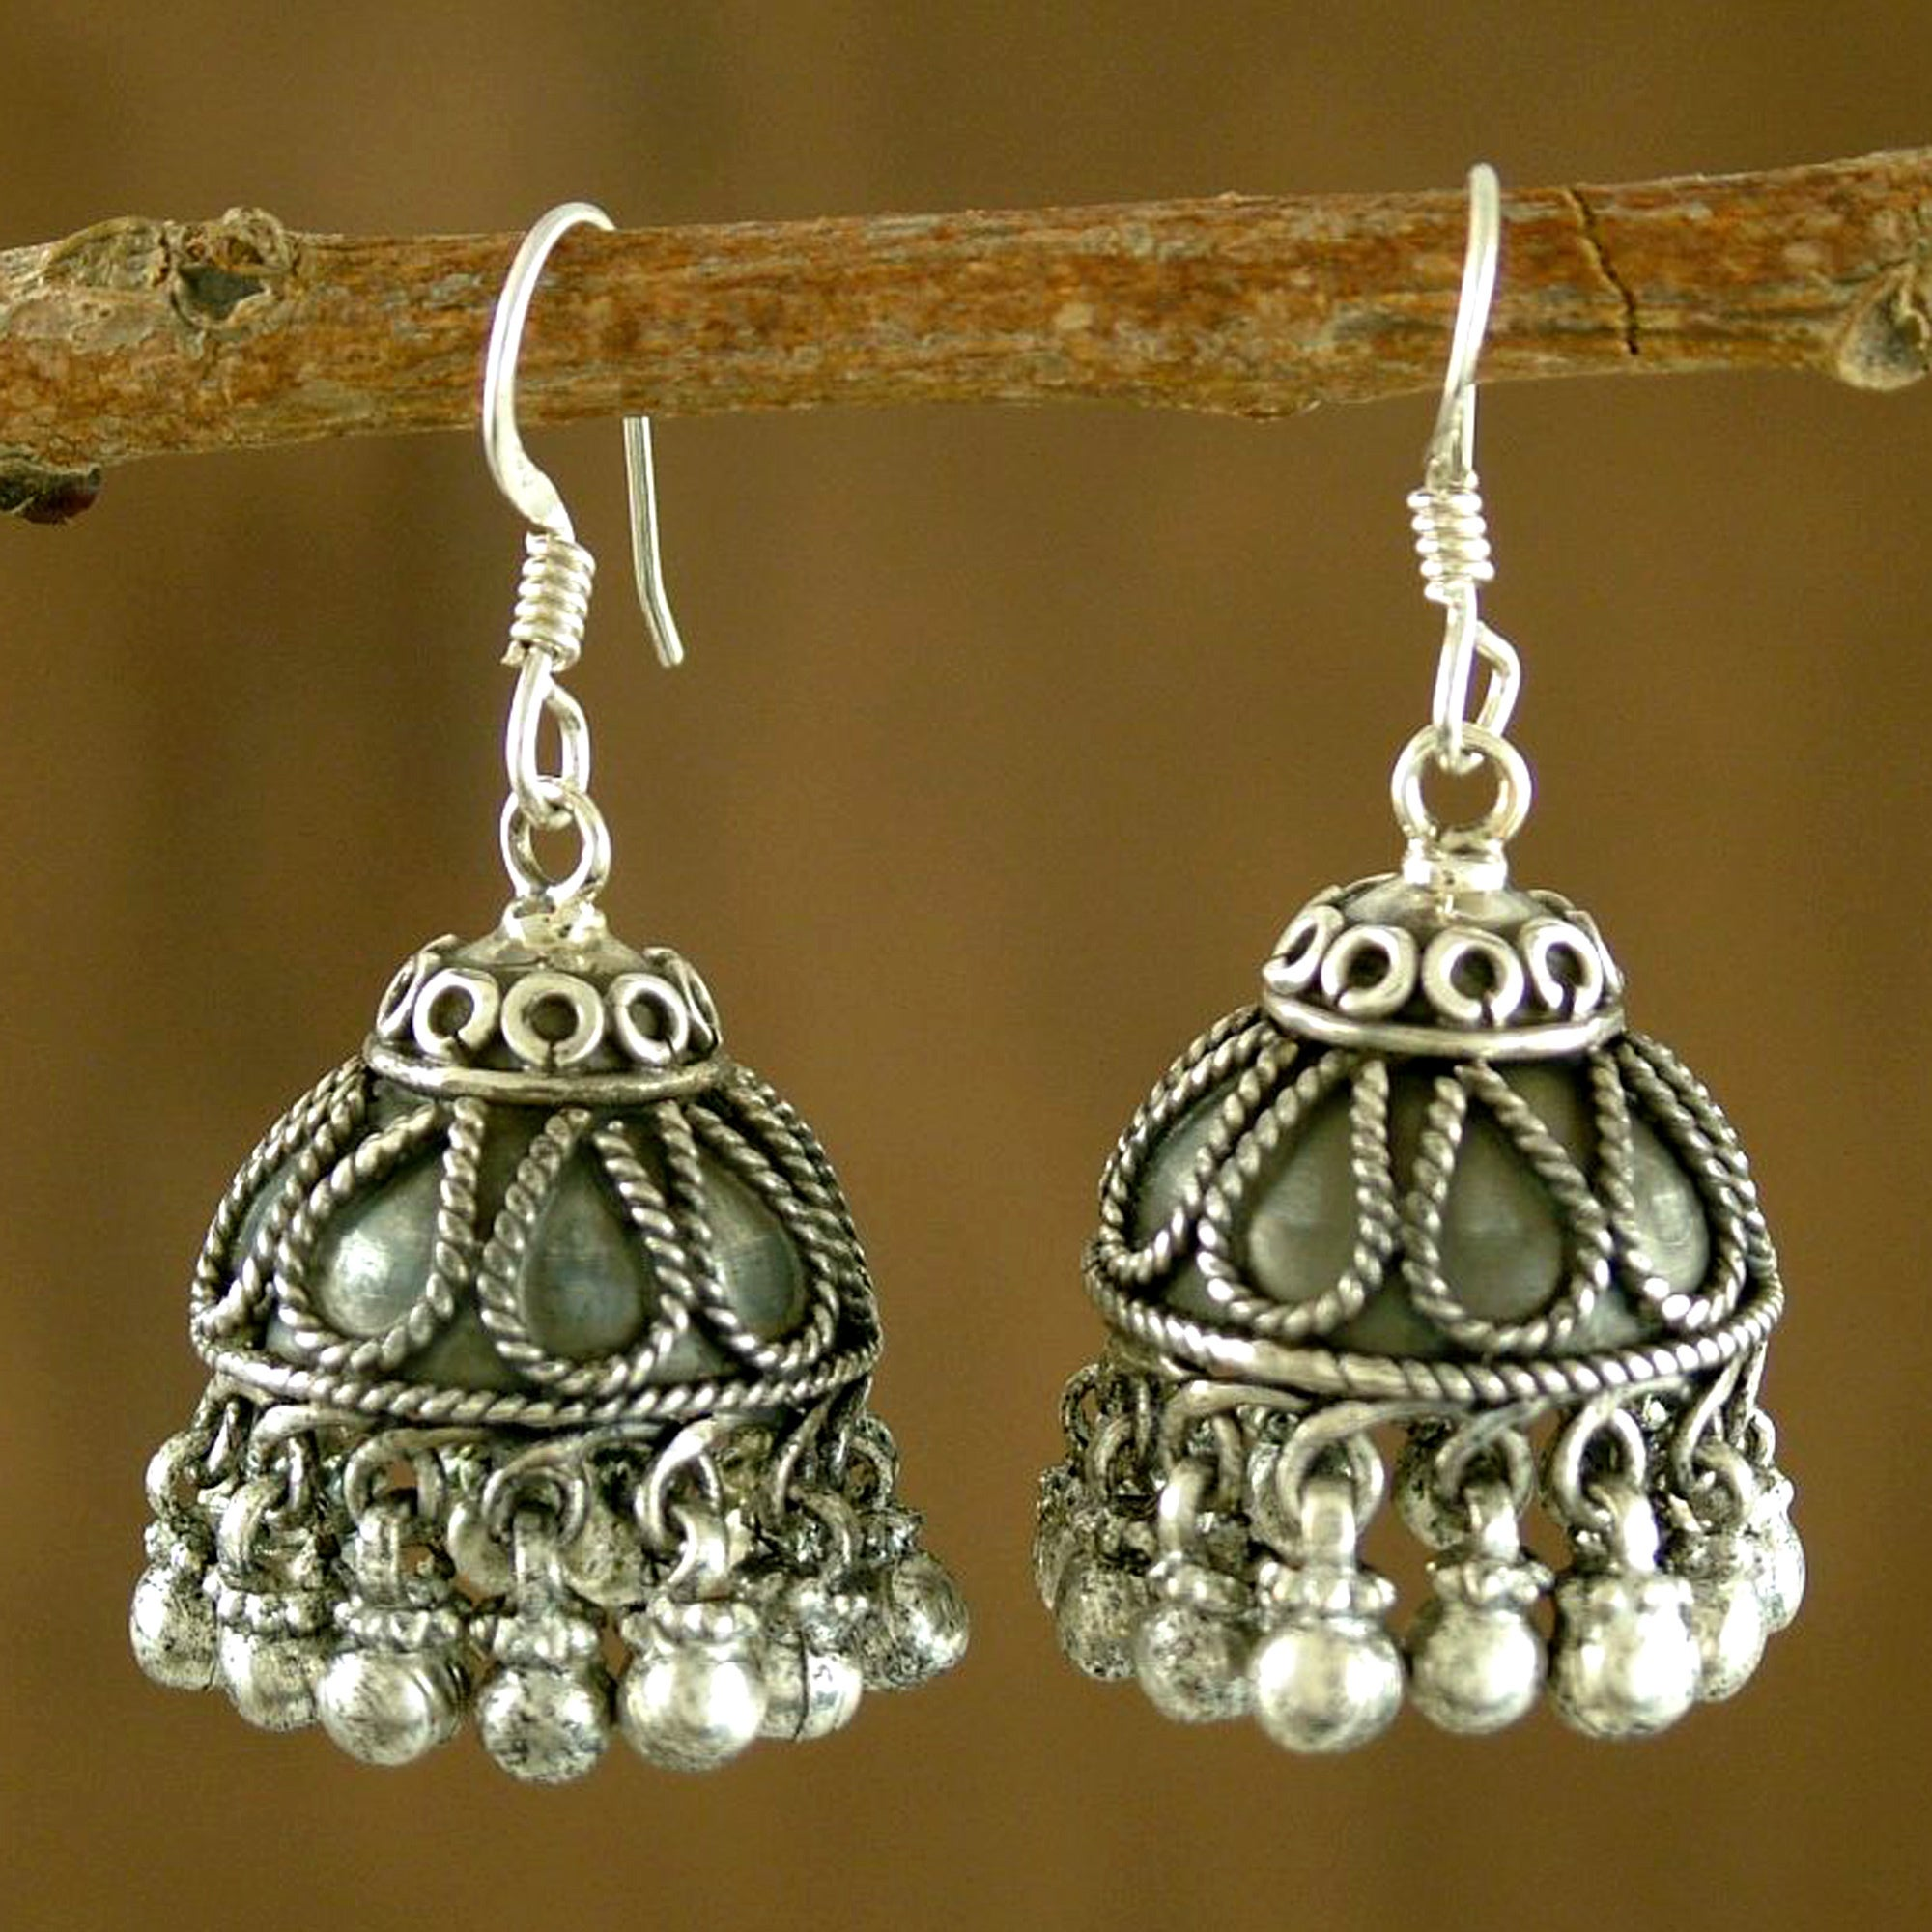 Handmade Sterling Silver Bells Chandelier Earrings India On Free Today Com 9598574